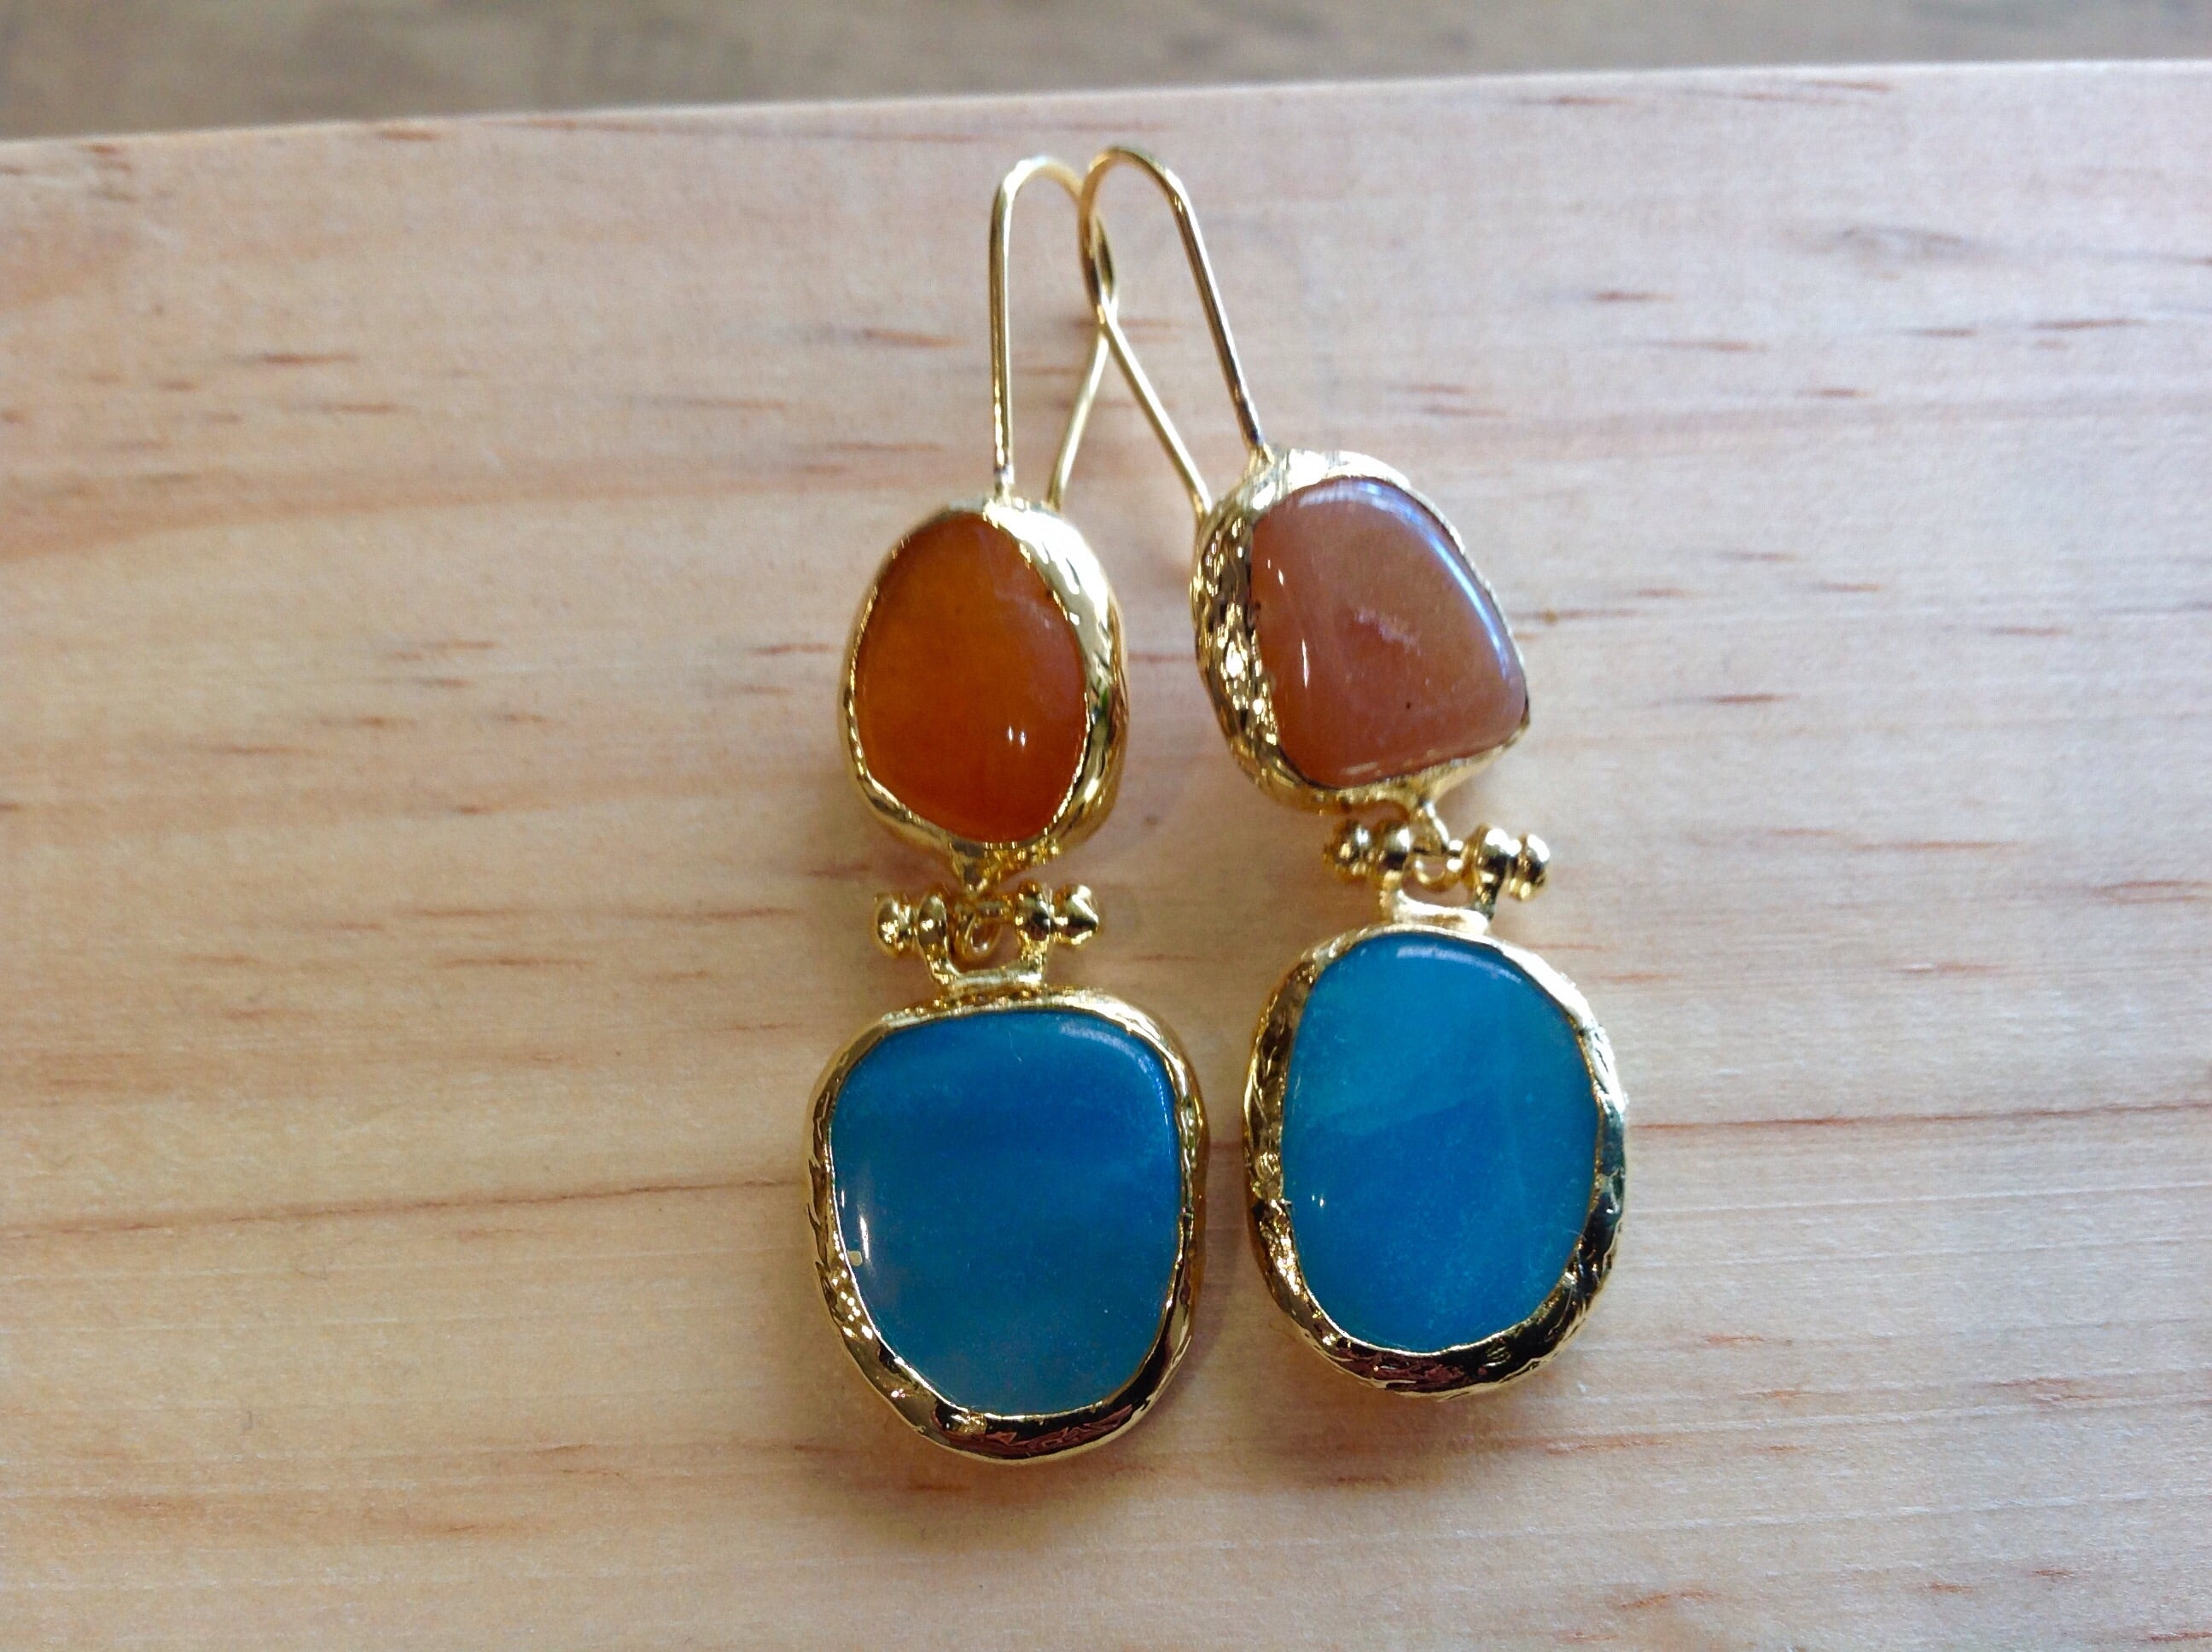 HANDMADE DOUBLE DROP EARRINGS -PEACH/BLUE-GREEN COLOURED STONE